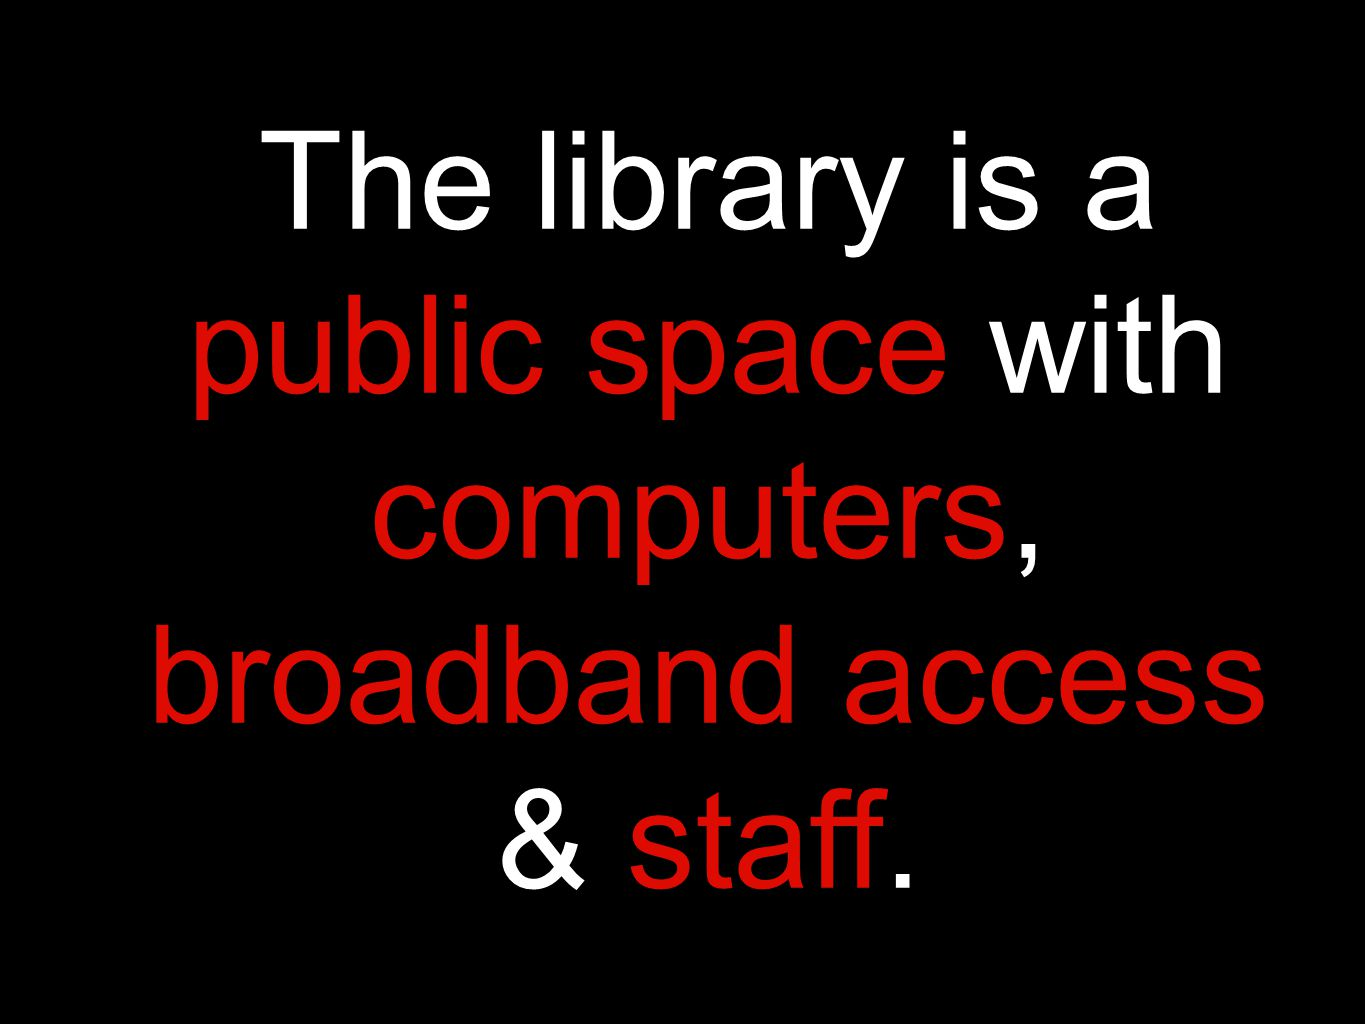 The library is a public space with computers, broadband access & staff.